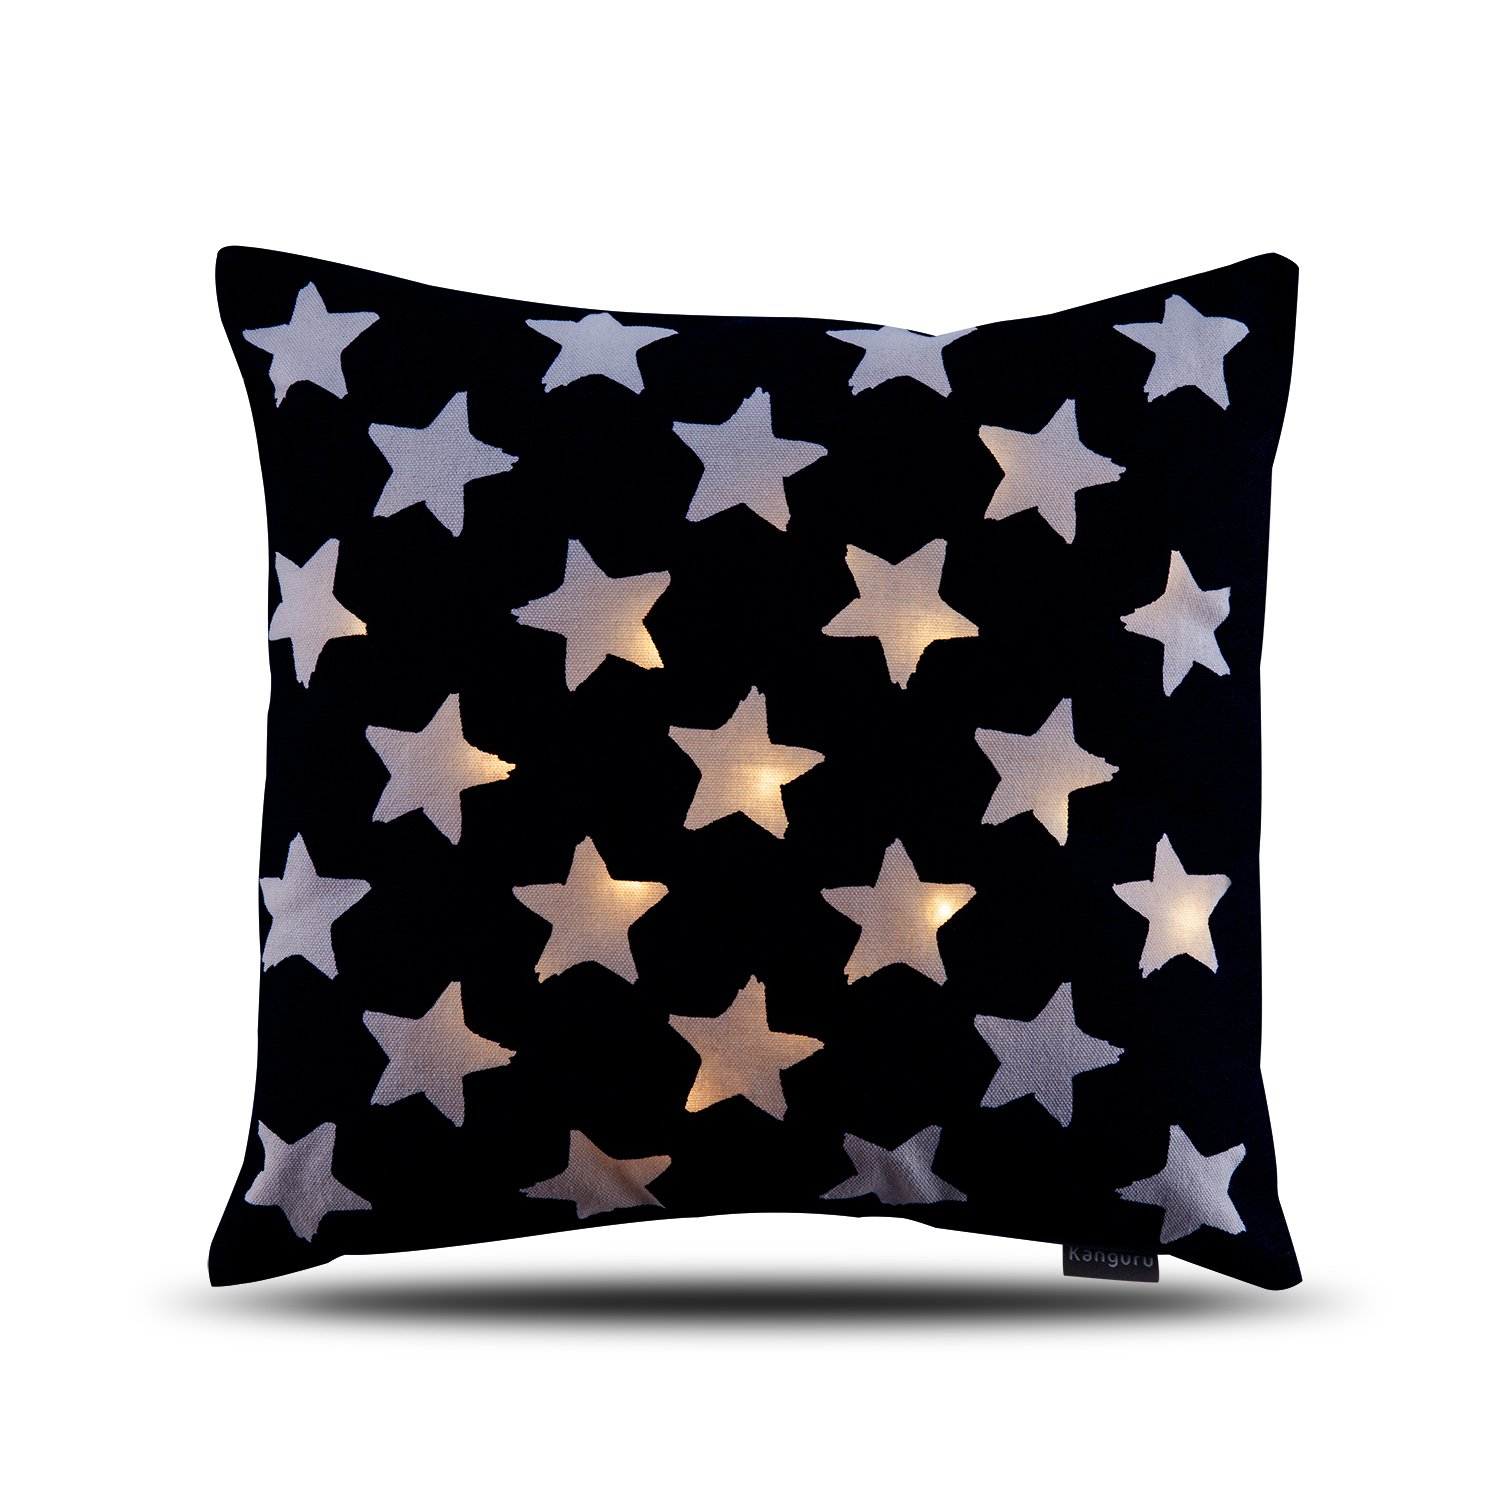 """Kanguru LED Pillow – Super Soft Battery Operated Light-Up Throw Pillow With Illuminated Pentagram Design Stars – 16""""x16"""" Decorative Square Cushion For The Sofa, Chair, Bed – Designed In Italy"""